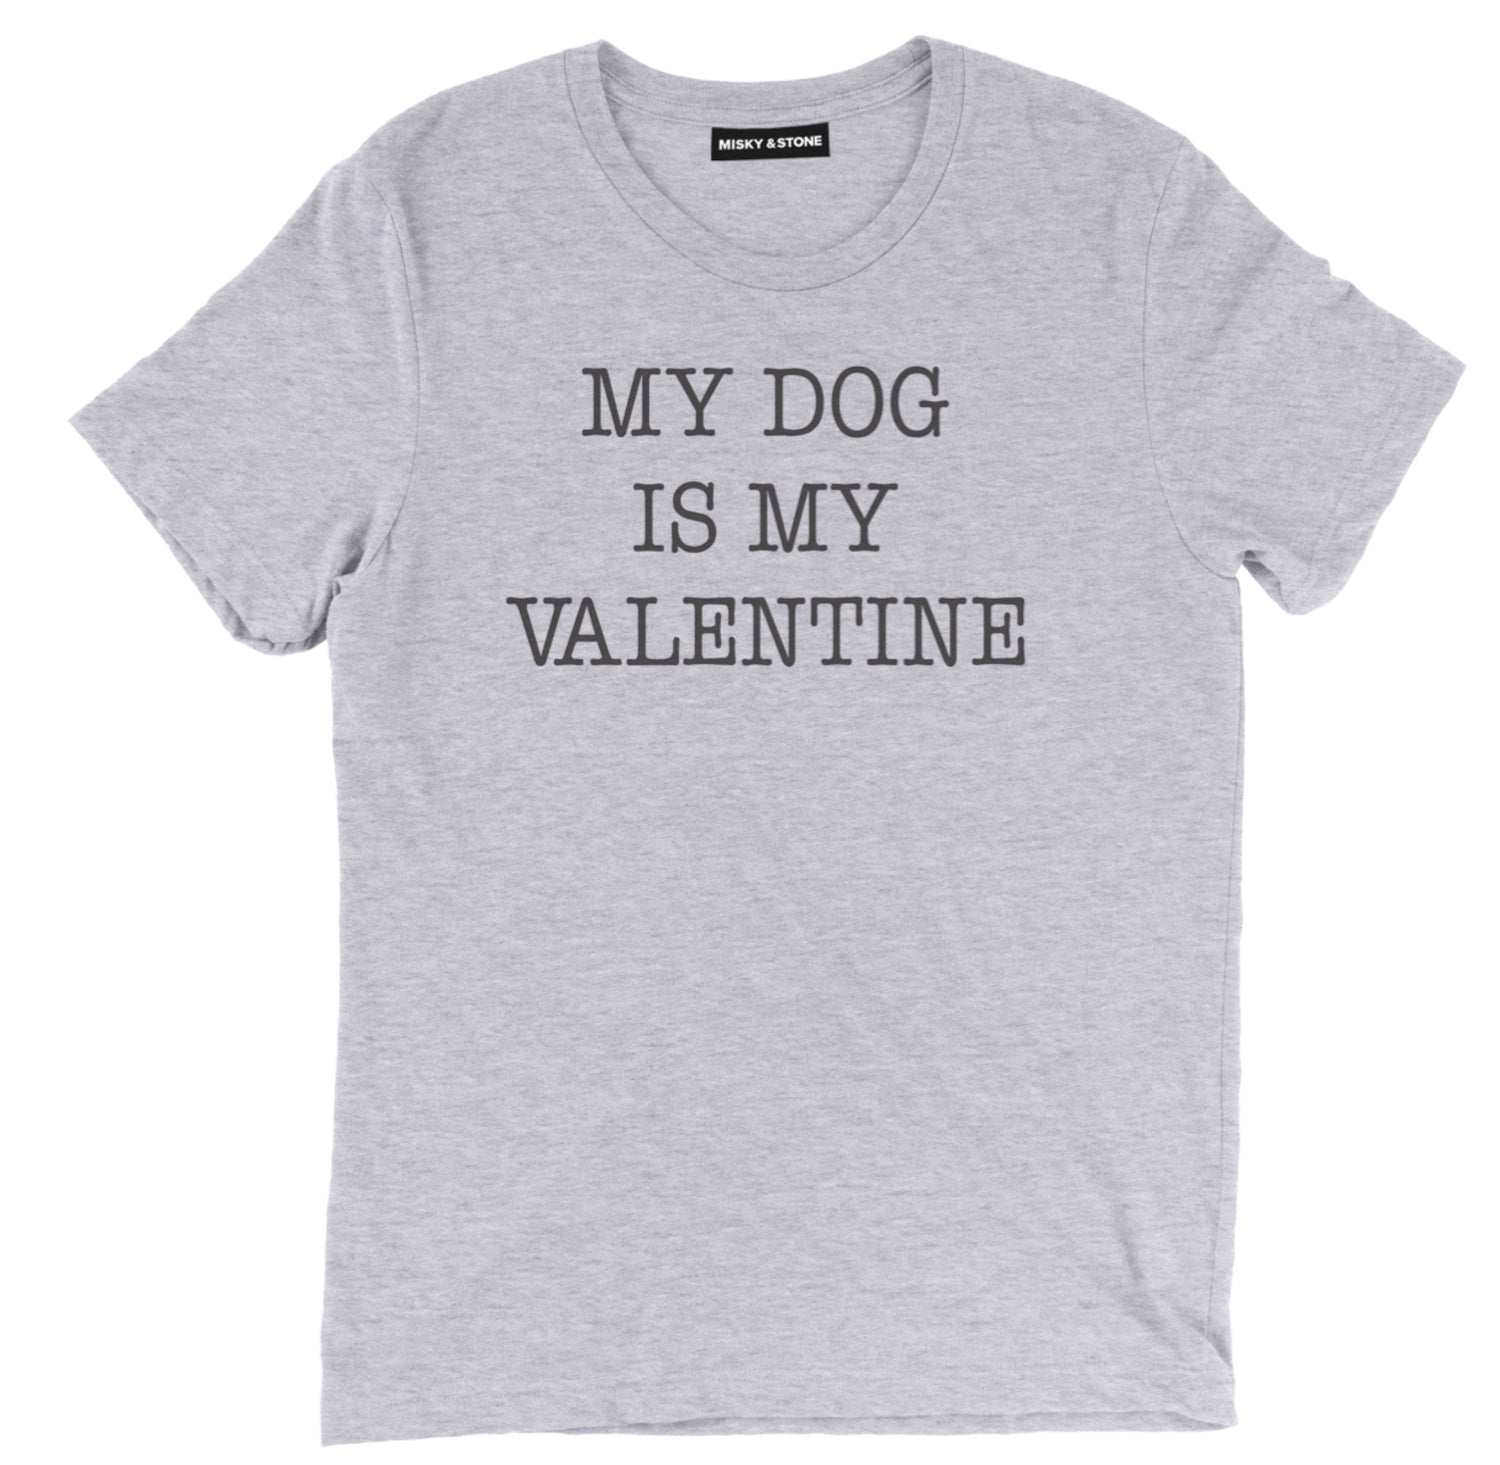 dog t shirts, dog shirts, dog lover t shirts, dog lover shirts, funny dog t shirt, dog tees